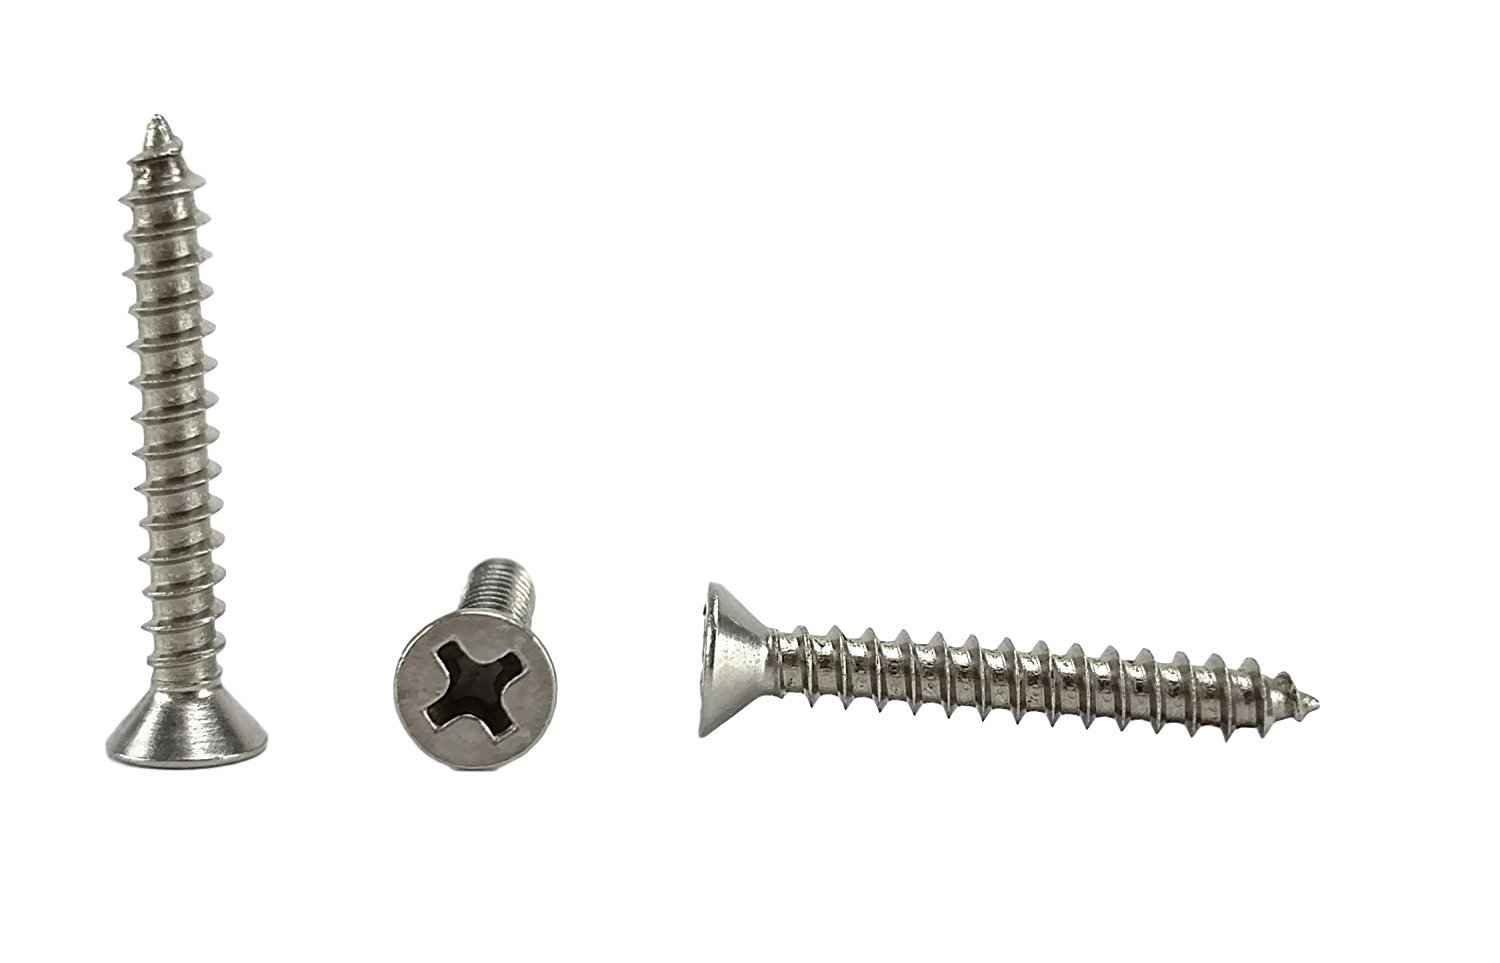 "#6 X 1"" Stainless Phillips Flat Head Sheetmetal Screw (3/8"" to 2"" in Listing) 100 Sheet Metal Screws, 82 Degrees (#6 x 1"")"